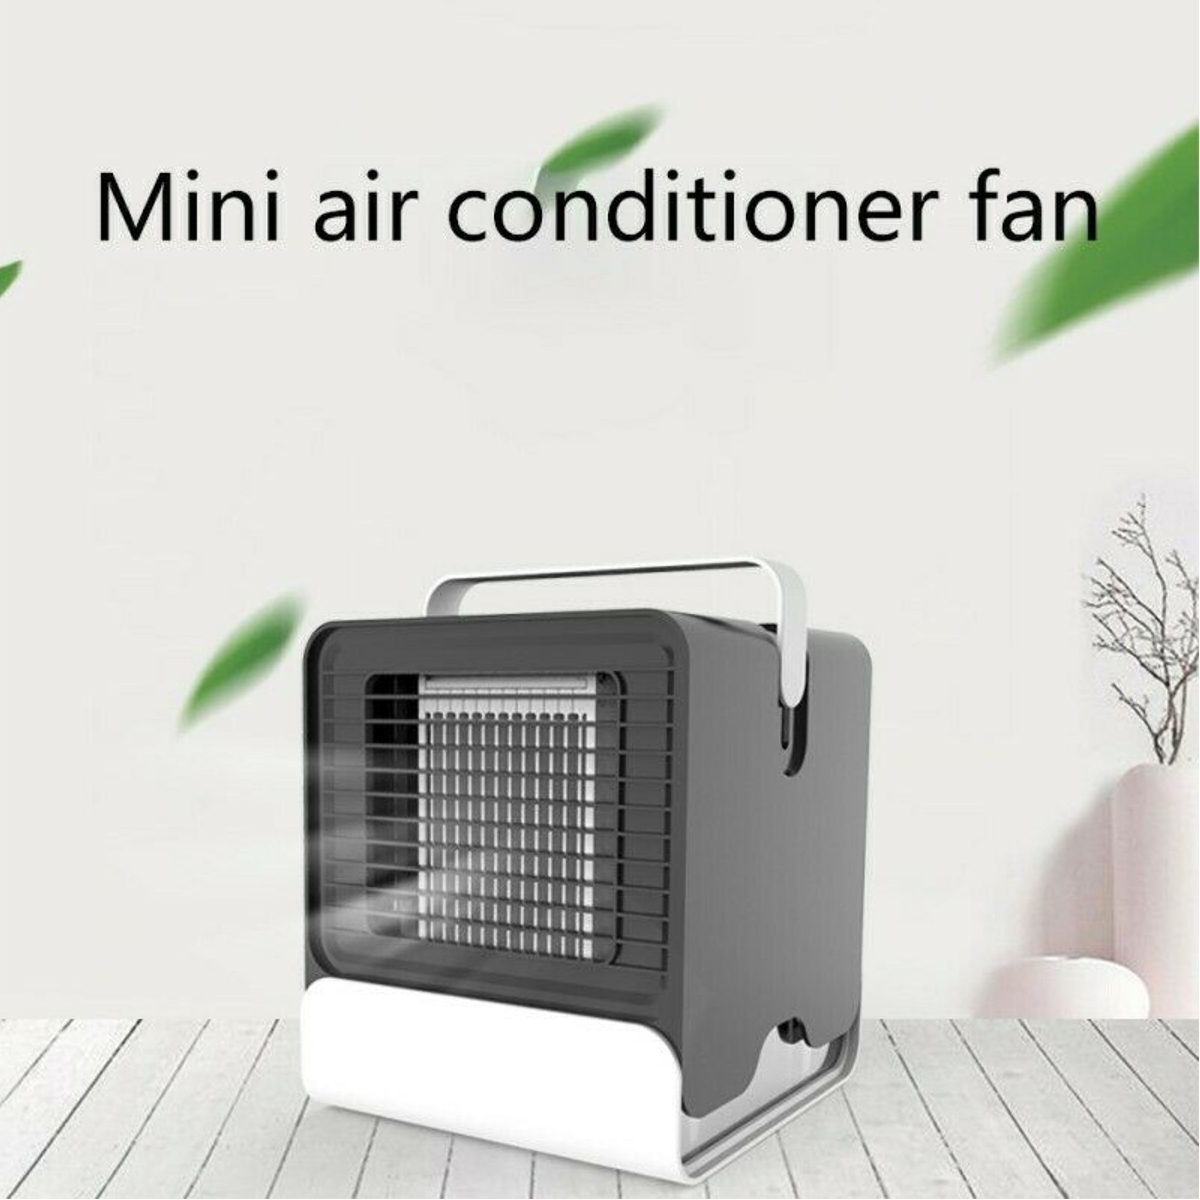 Details about Portable Mini Air Conditioner Fan Water Cool Cooling Artic  Air Cooler Humidifier